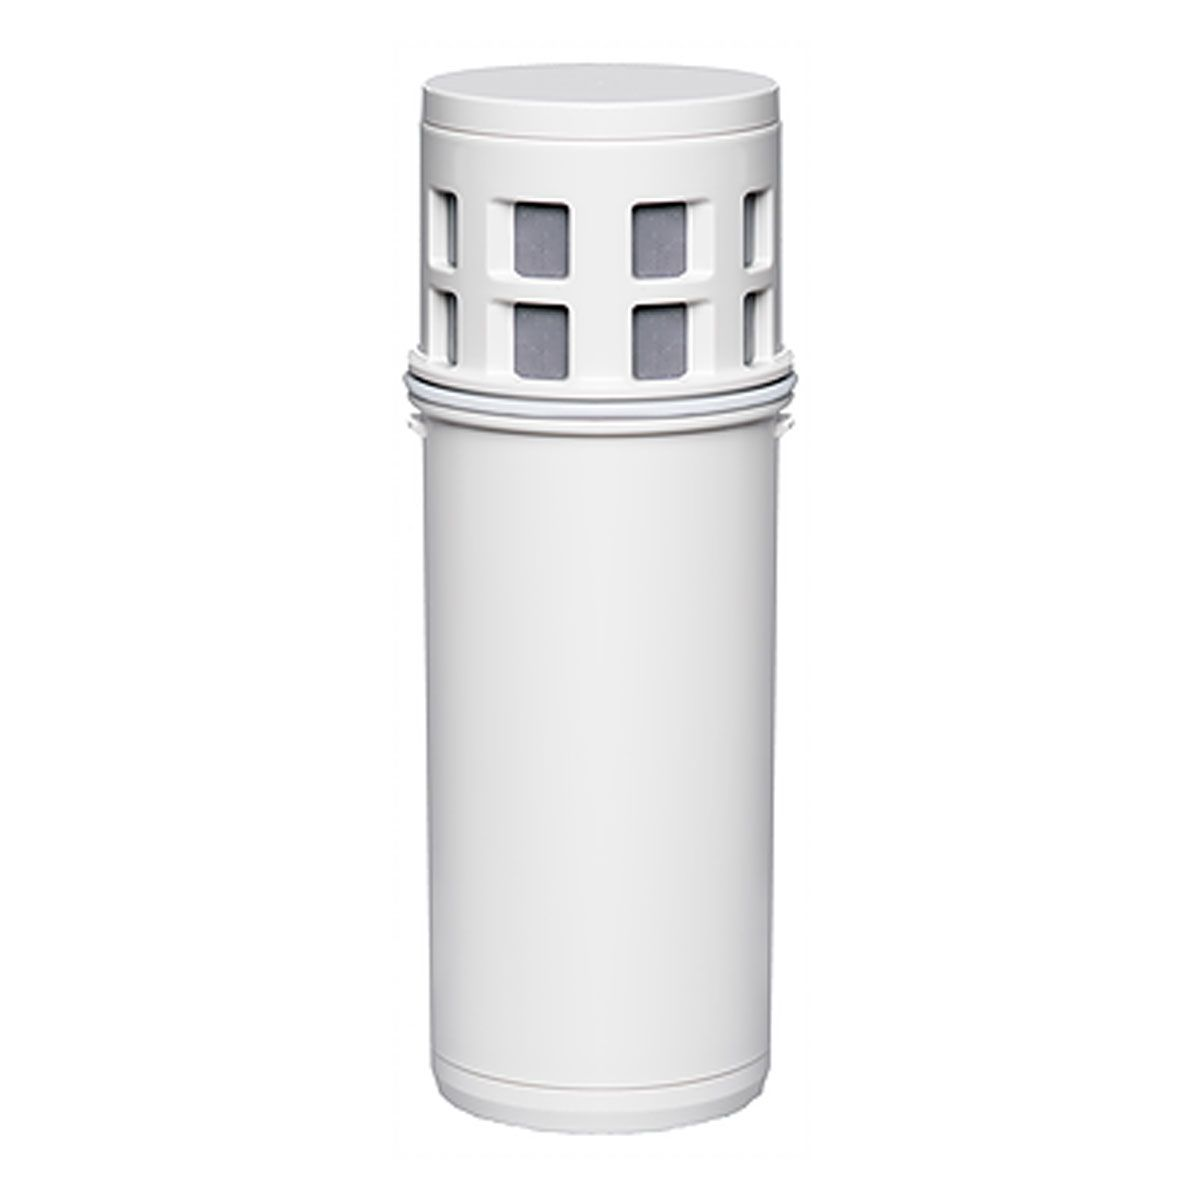 Mitsubishi: Cleansui Microfiltration Replacement Cartridge - 2 Pack (ACPC5W)